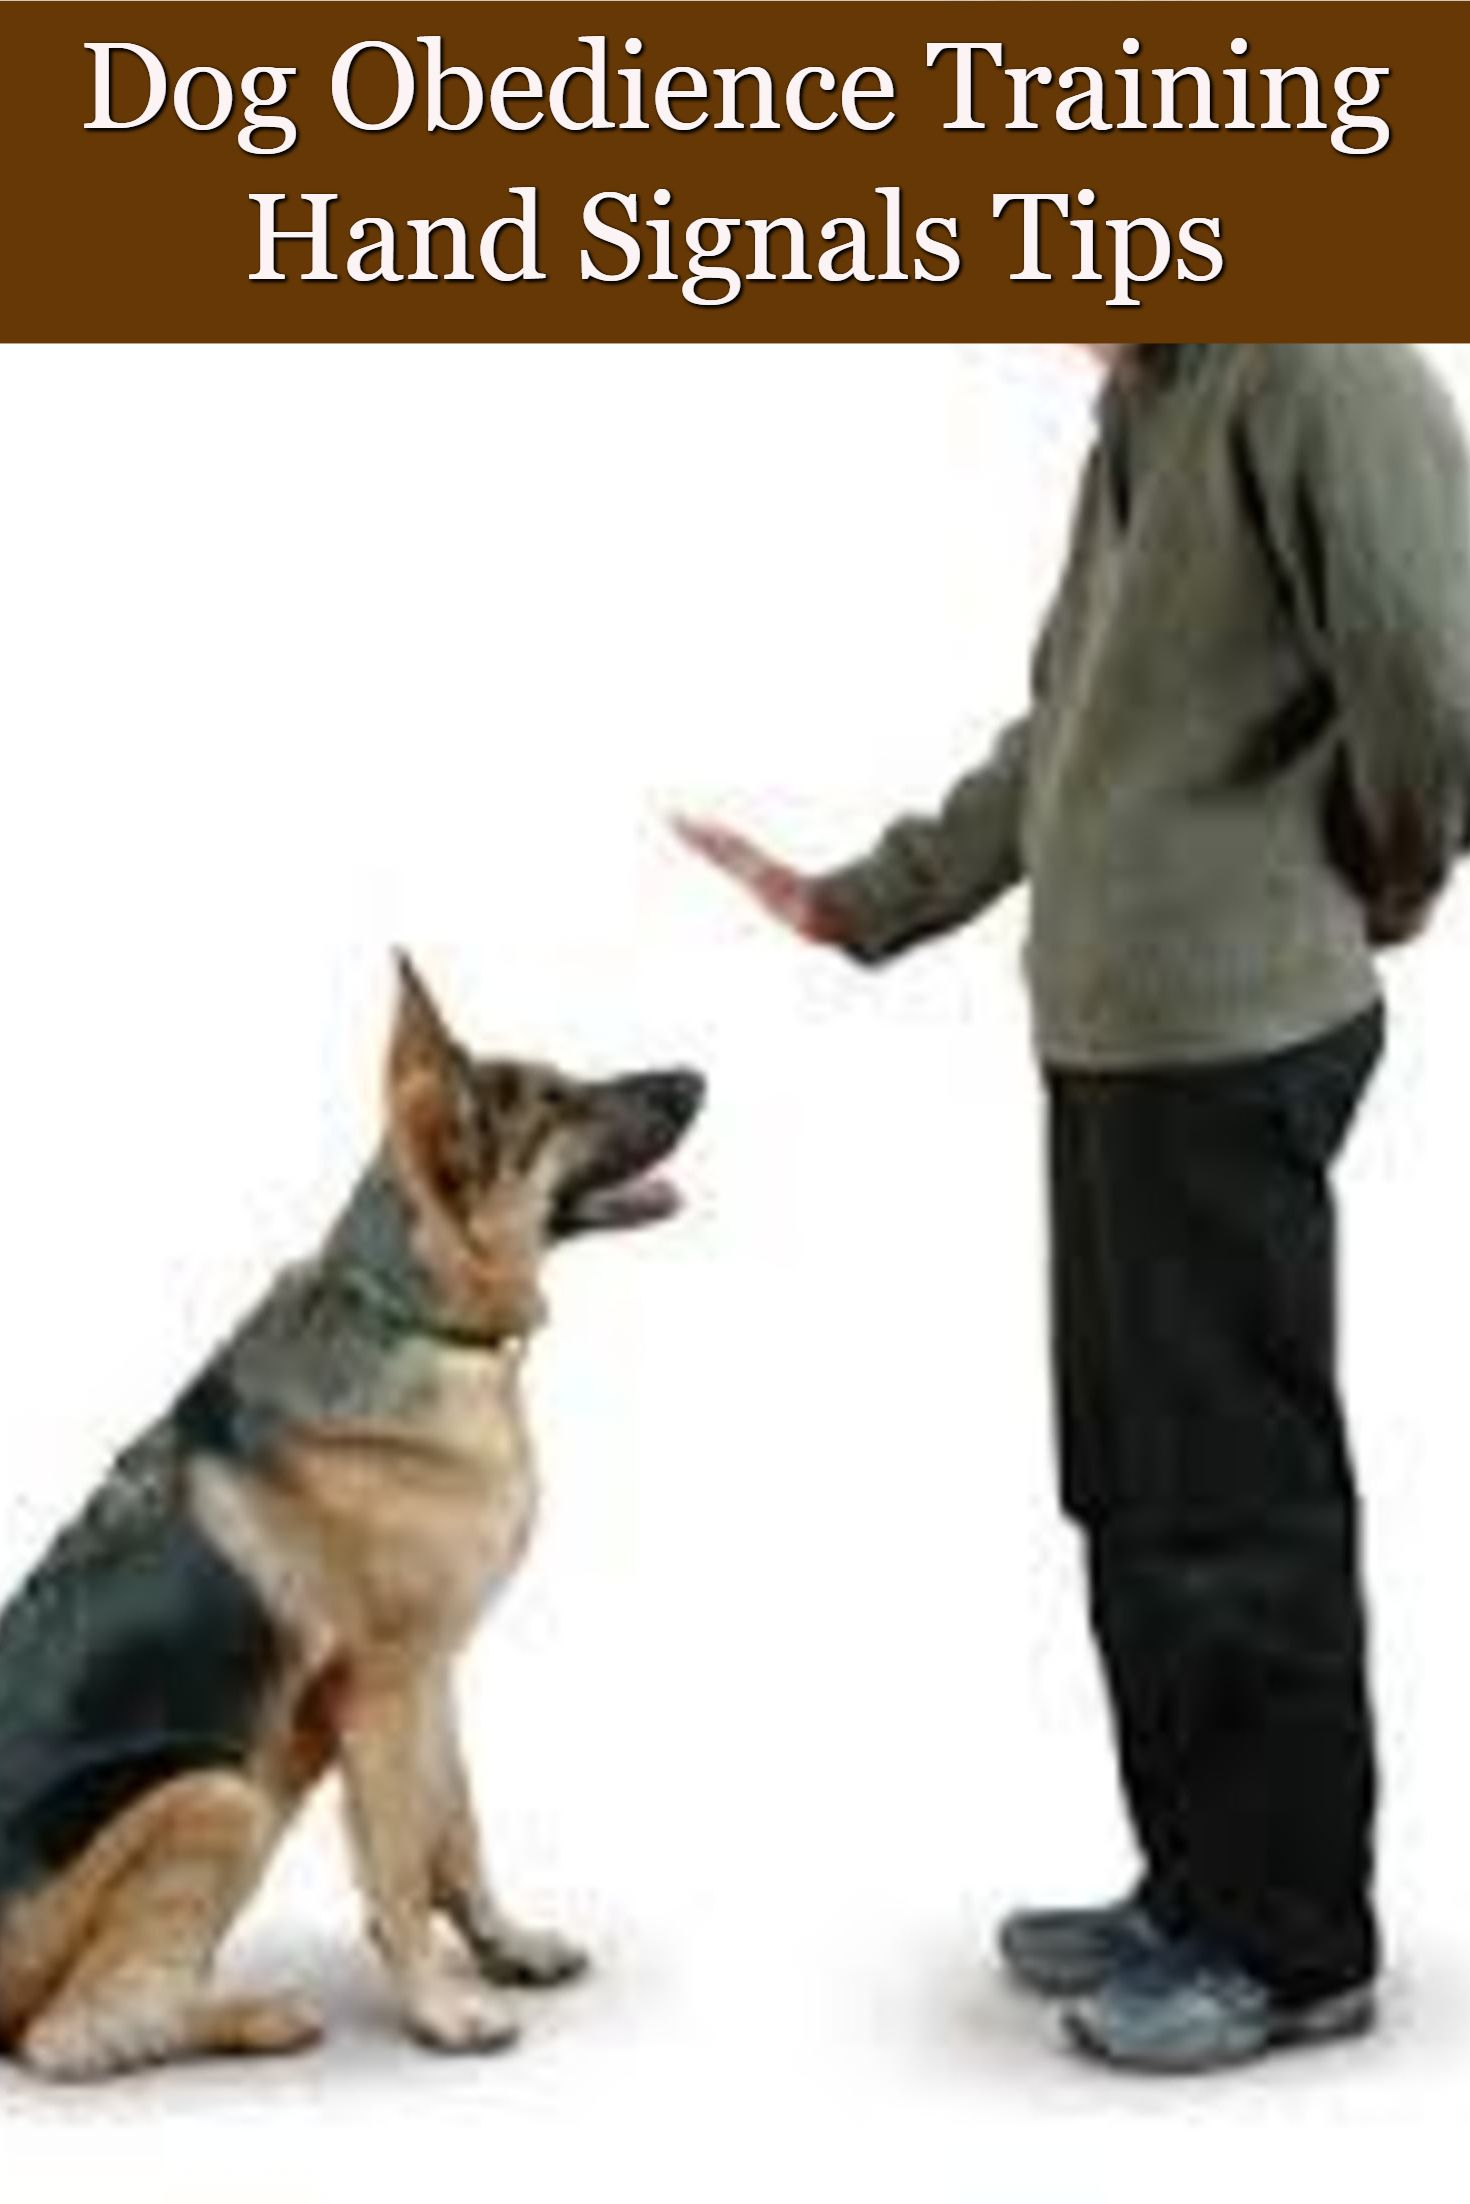 Dog Obedience Training Hand Signals Dog Training Techniques Dog